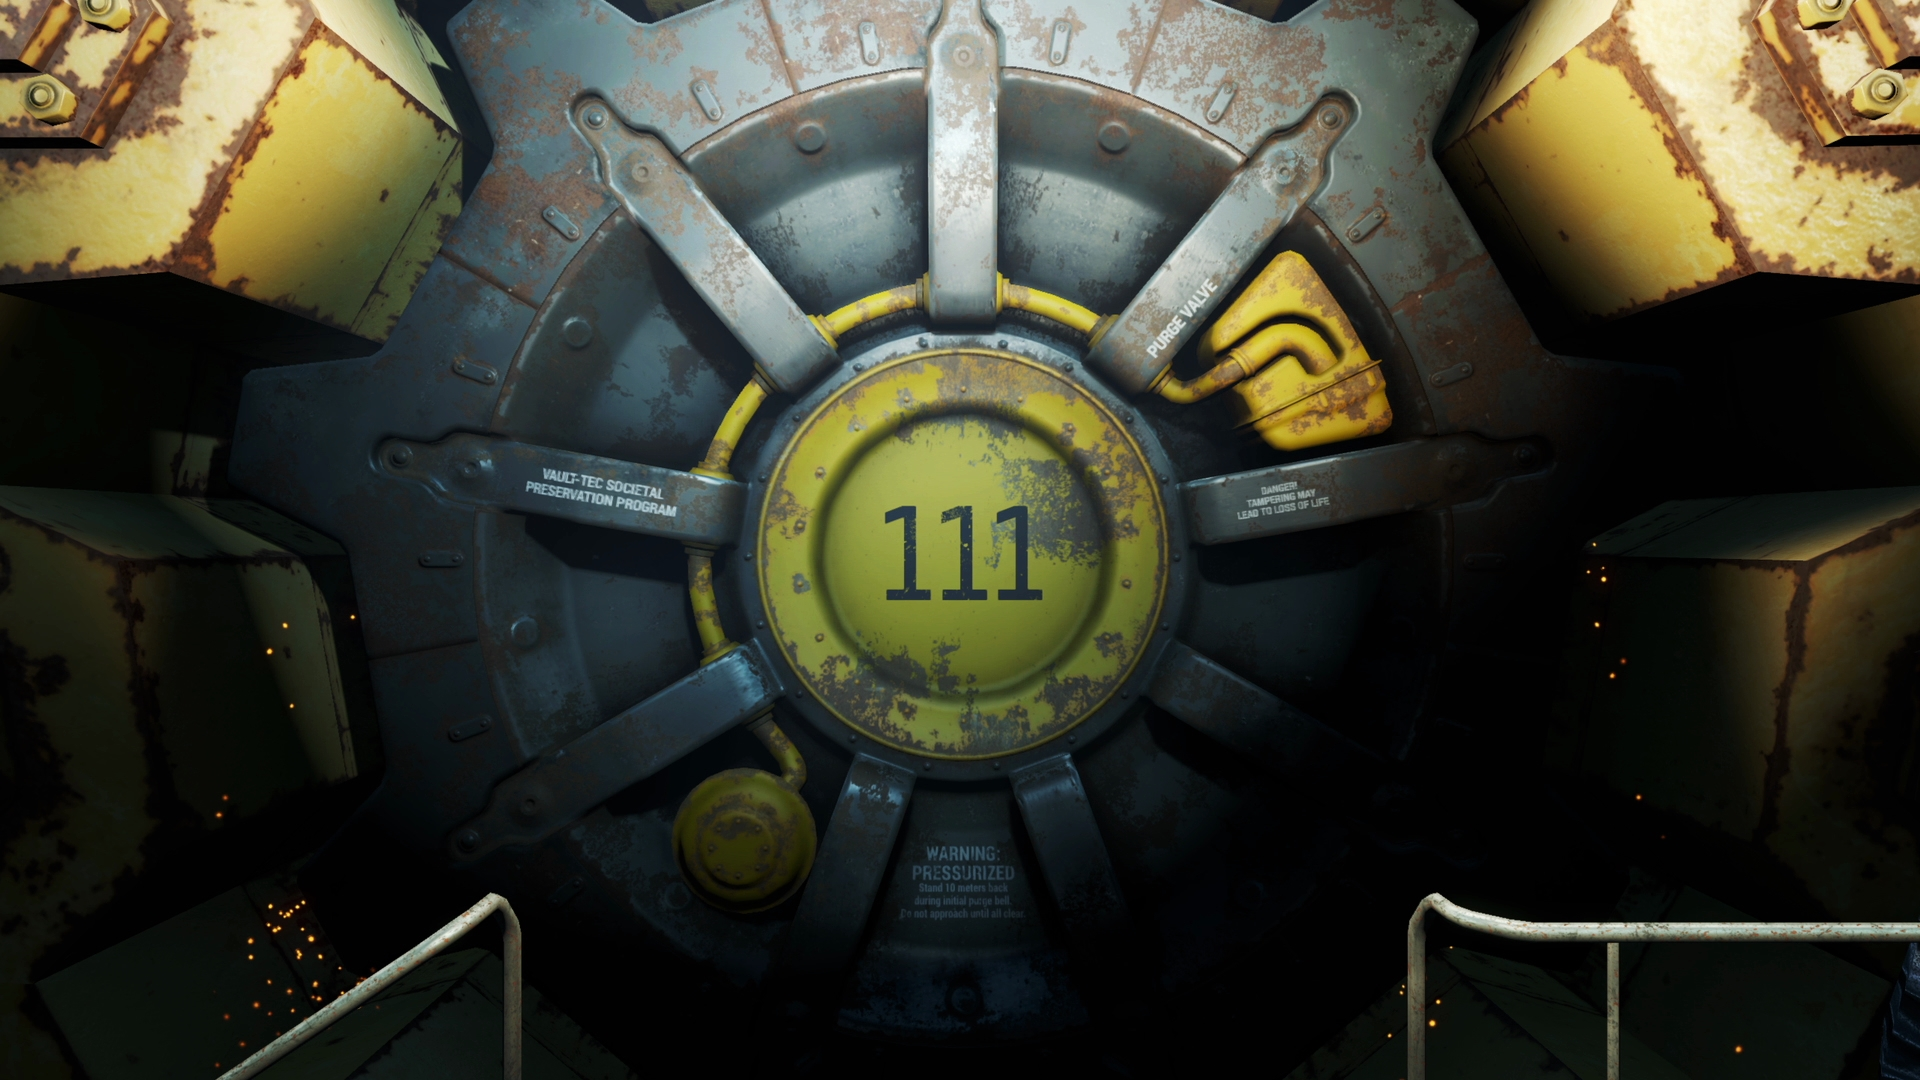 Fall Out 4 Hd Wallpapers Fallout 4 Wallpapers Pictures Images